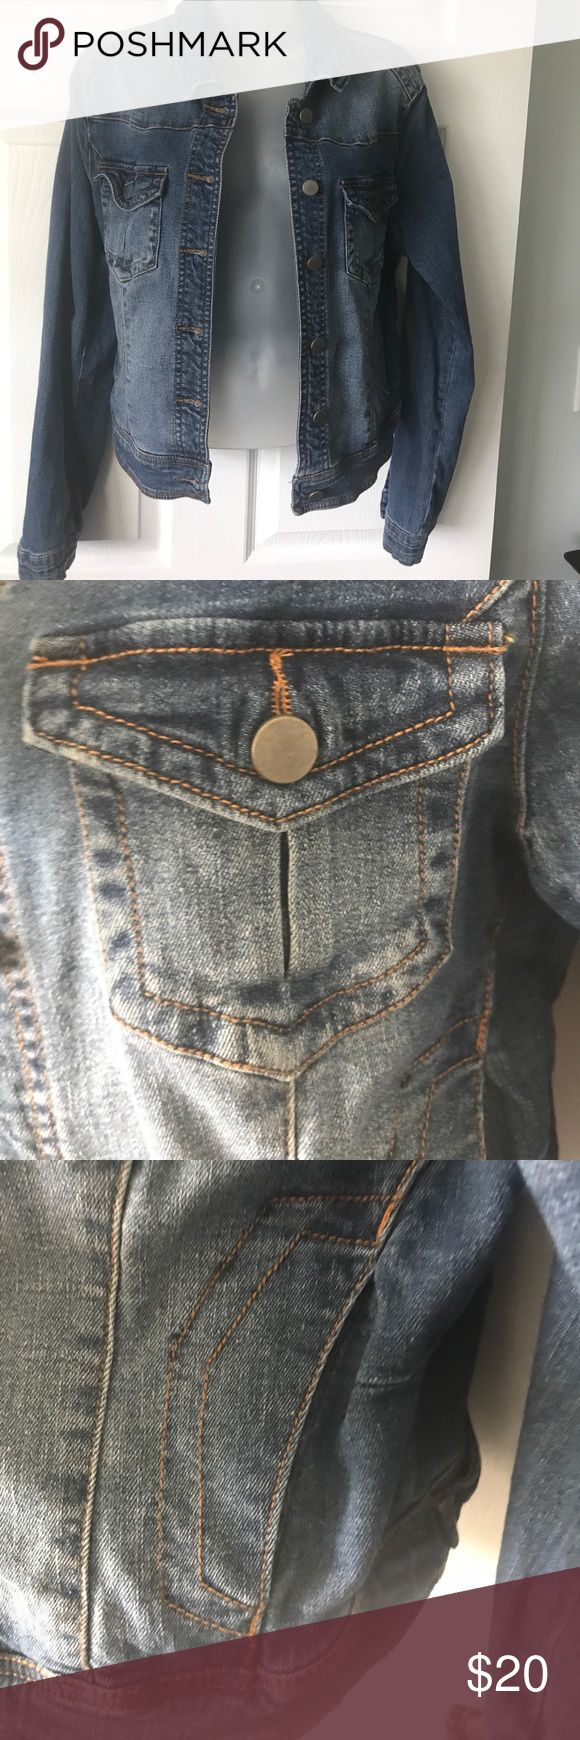 Denim jacket NWOT never worn Lots of great details. A perfect, classic and timeless jean jacket. Breast pockets, slit hip pockets, button cuffs. Yoke topstitching. Slightly cropped and fitted. A little higher in back. Super cute with a dress (maxi or short) to give waist definition. 99% cotton 1% spandex so some stretch. True to size or would fit a medium if looking for a looser fit. Never worn. Jackets & Coats Jean Jackets